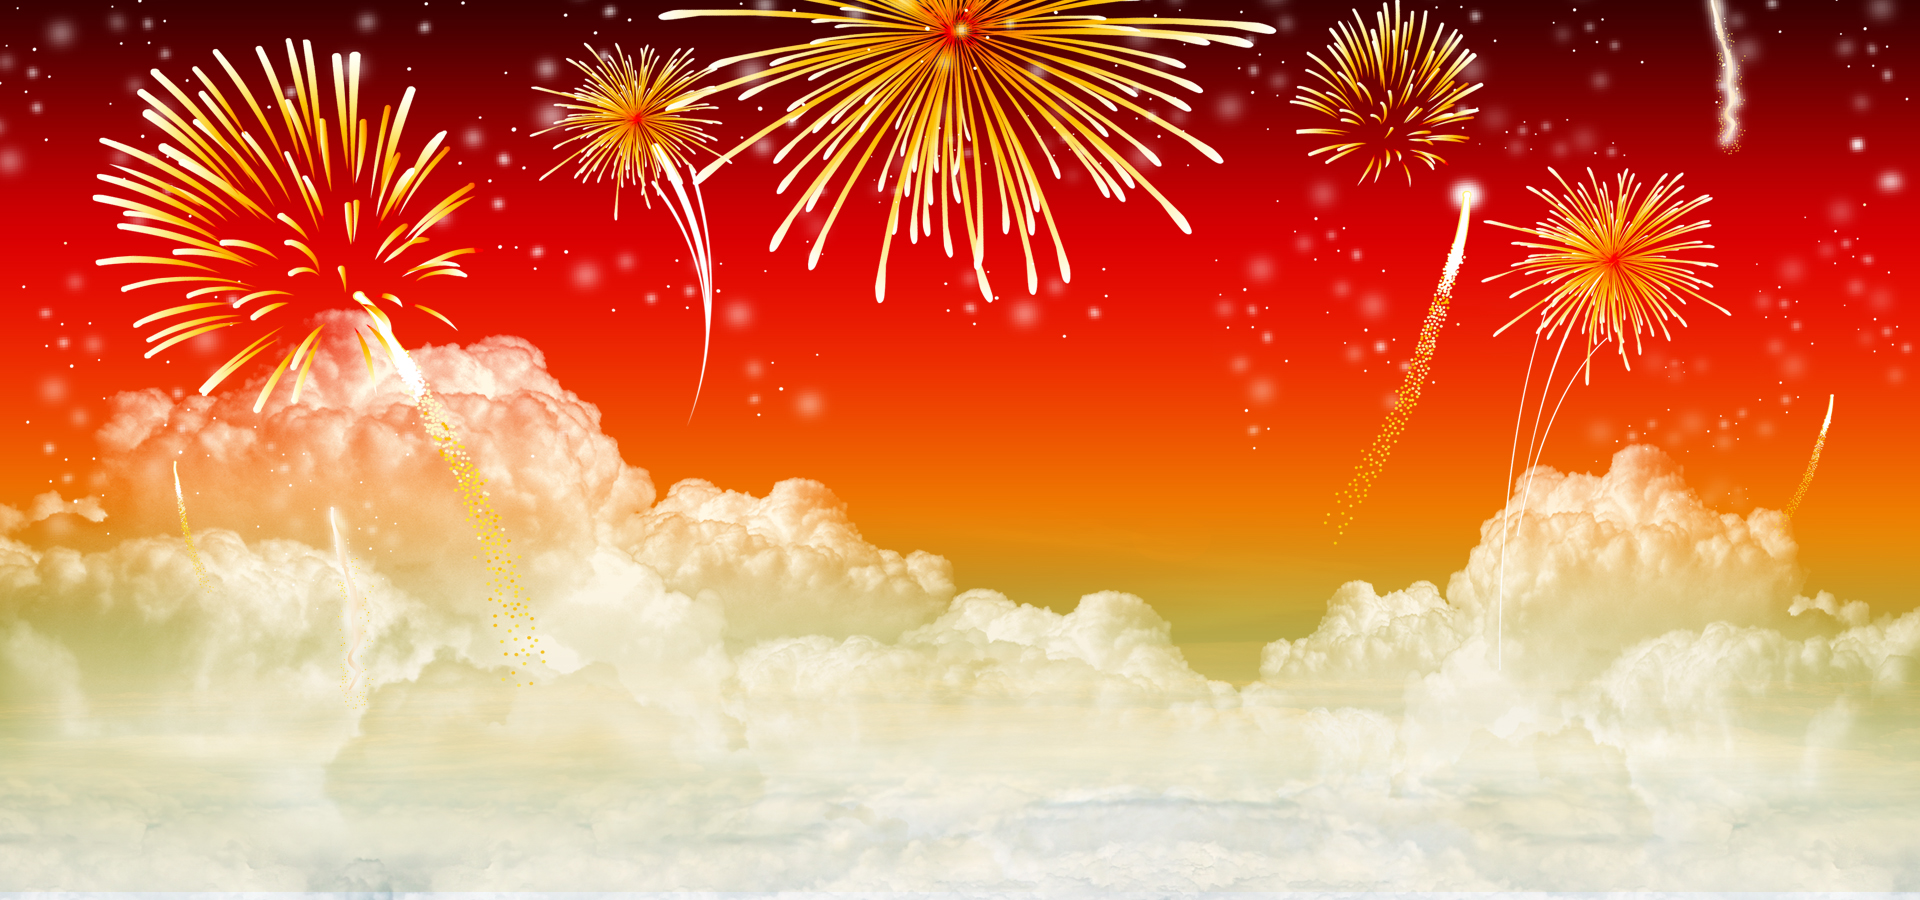 New Year Fireworks Flat Red Poster Background, Wedding, New Year ...